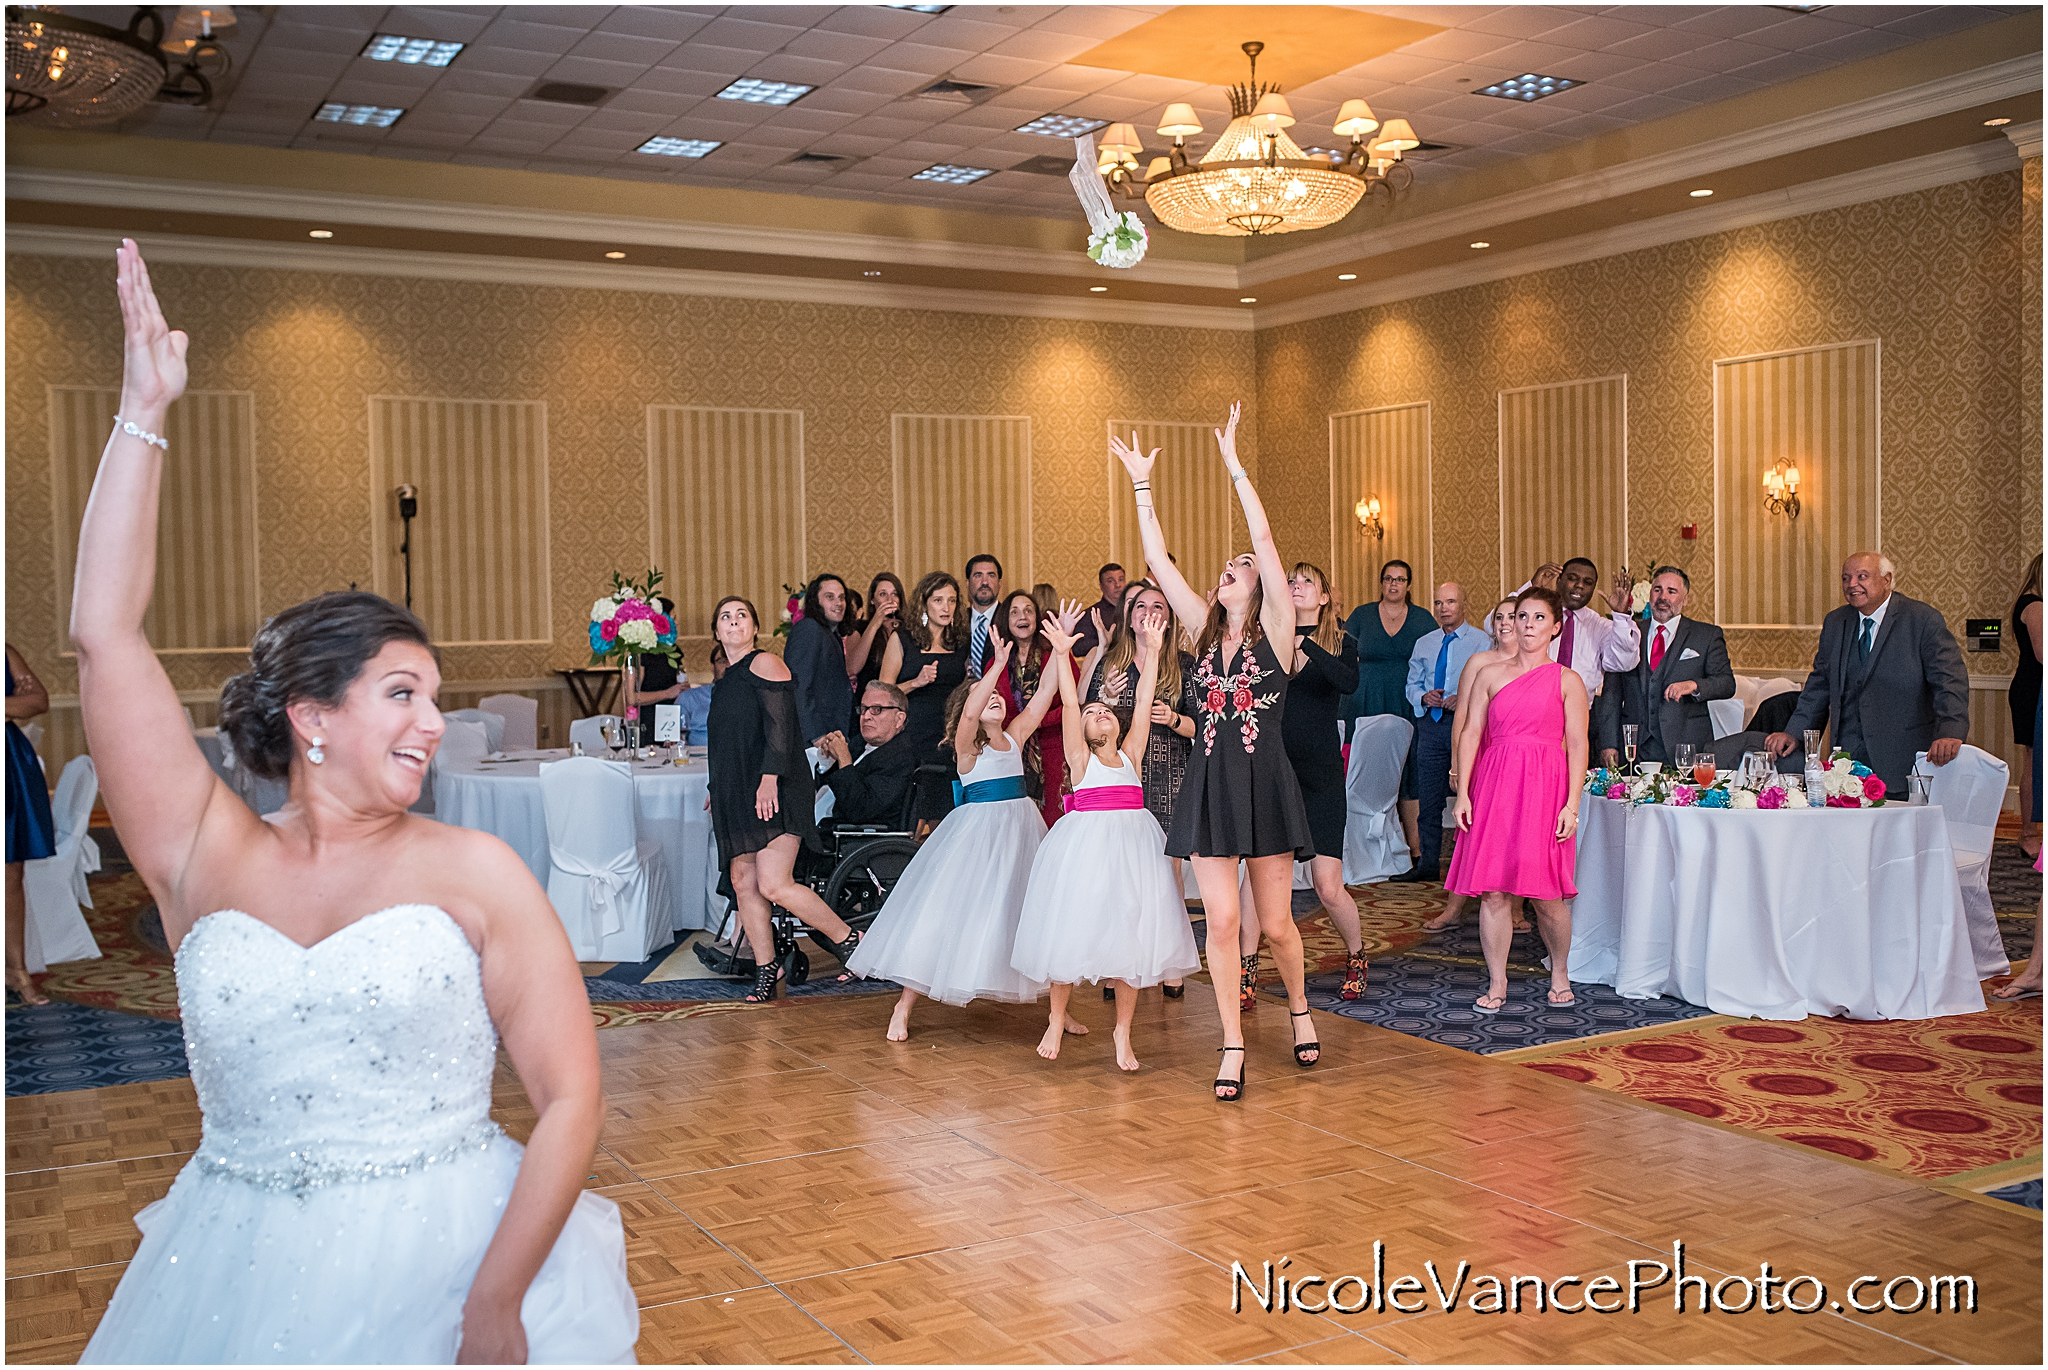 The bride tosses the bouquet at her reception at Virginia Crossings.